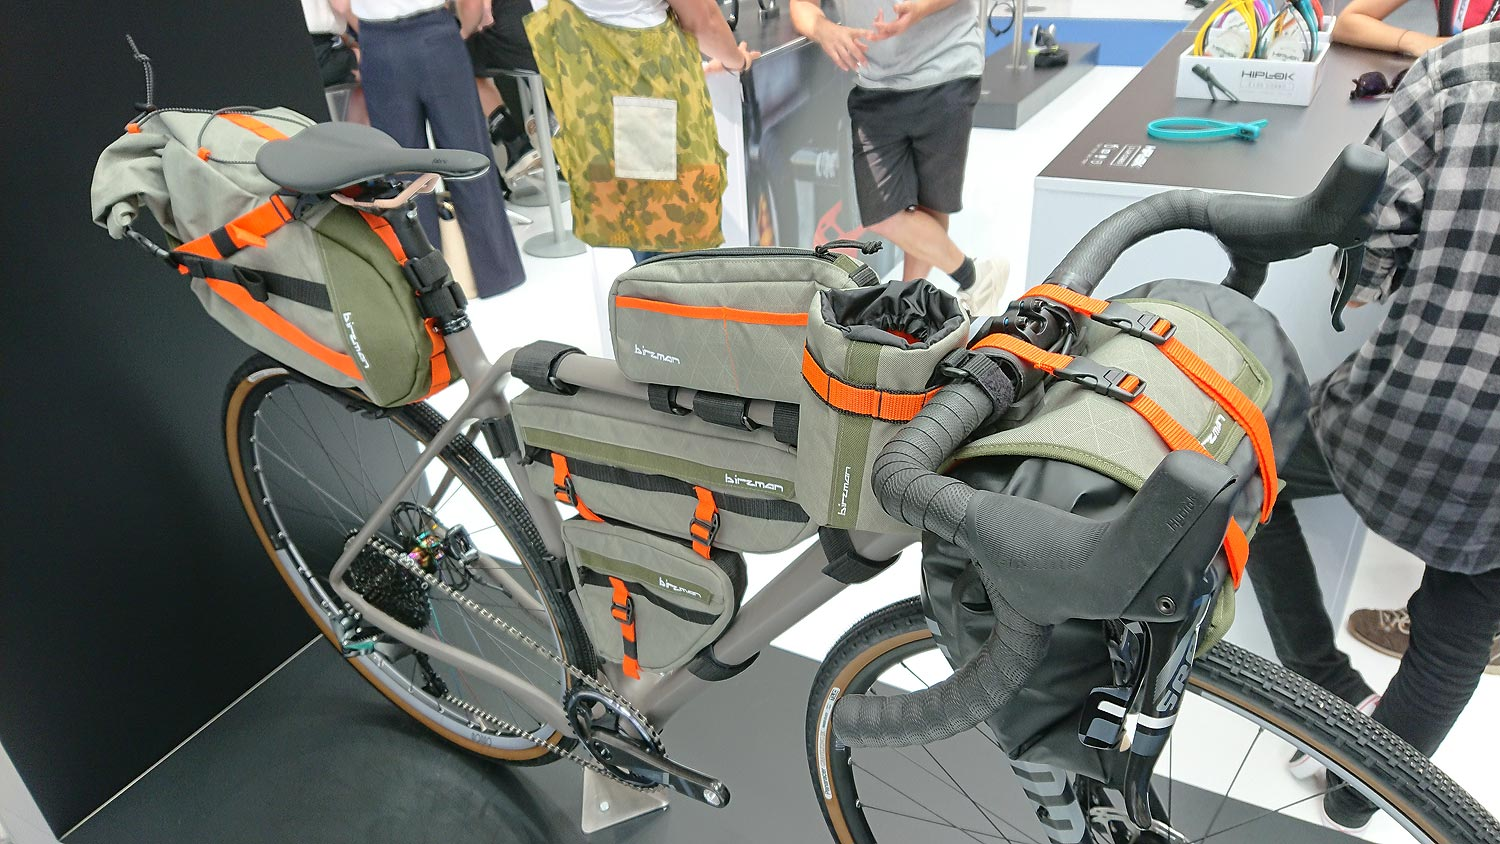 Eurobike 2018 - Boost cycles